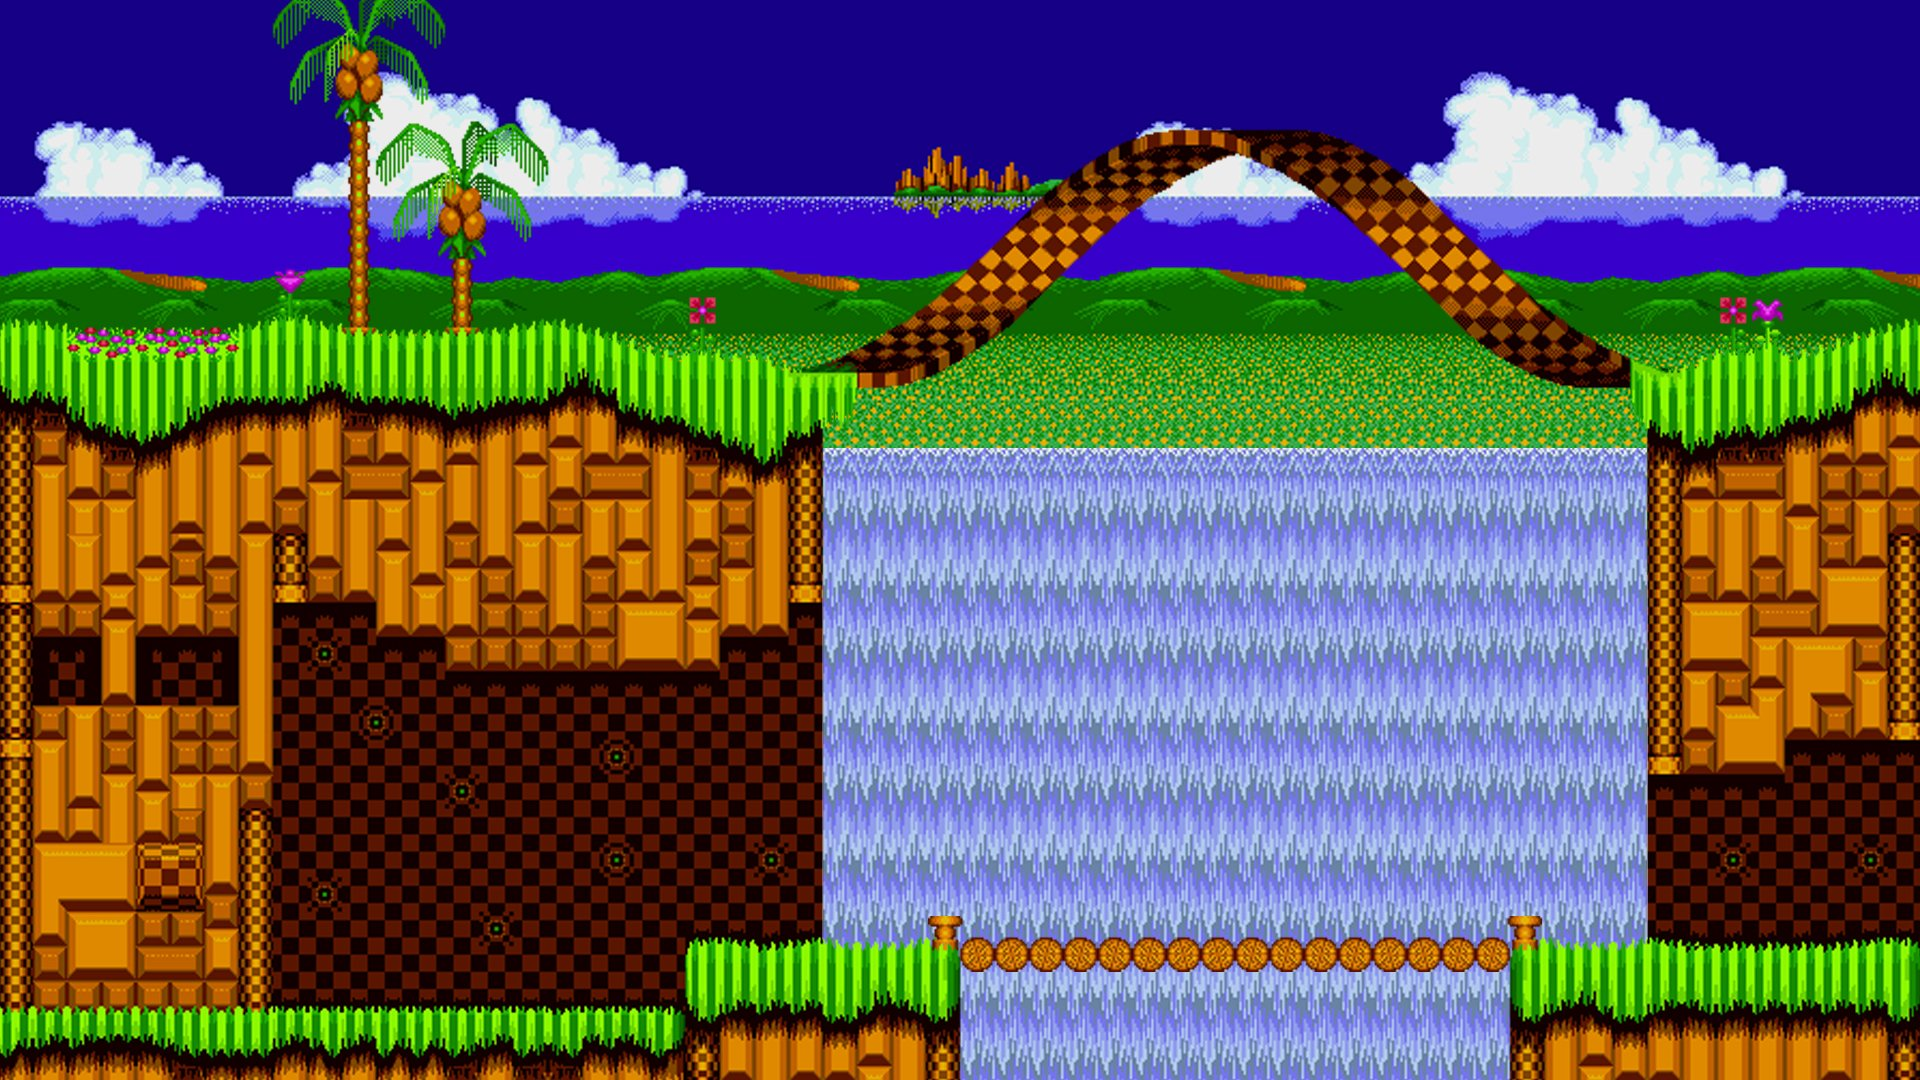 Emerald Hill Zone Full Hd Wallpaper And Background Image